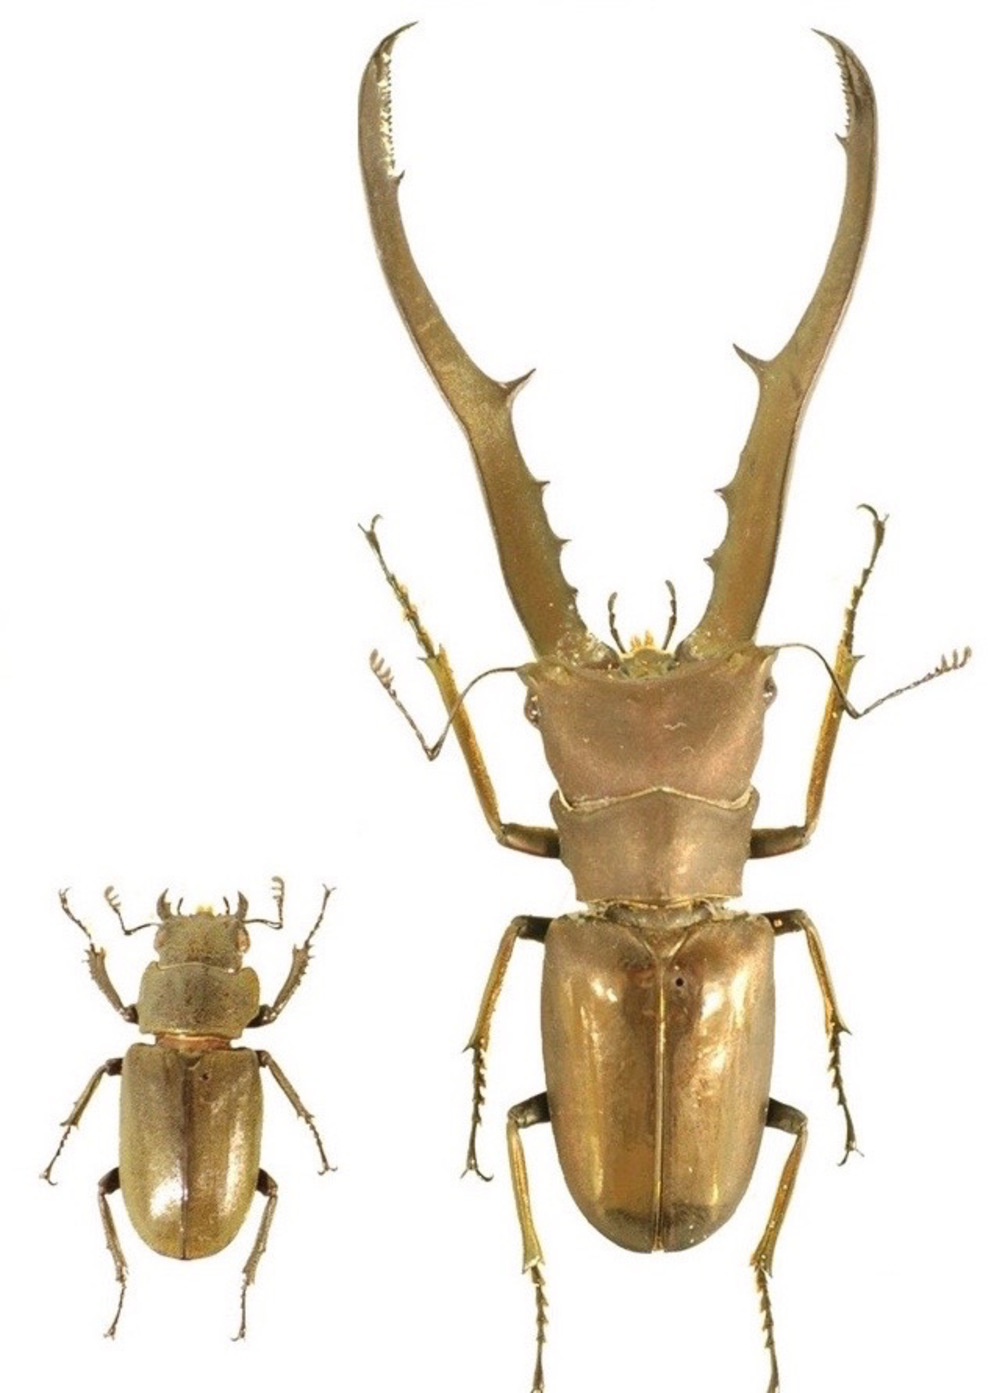 Thanks to the doublesex gene, in the stag beetle Cyclommatus metallifer, mandibles of males (right) are much larger than those of females (left).